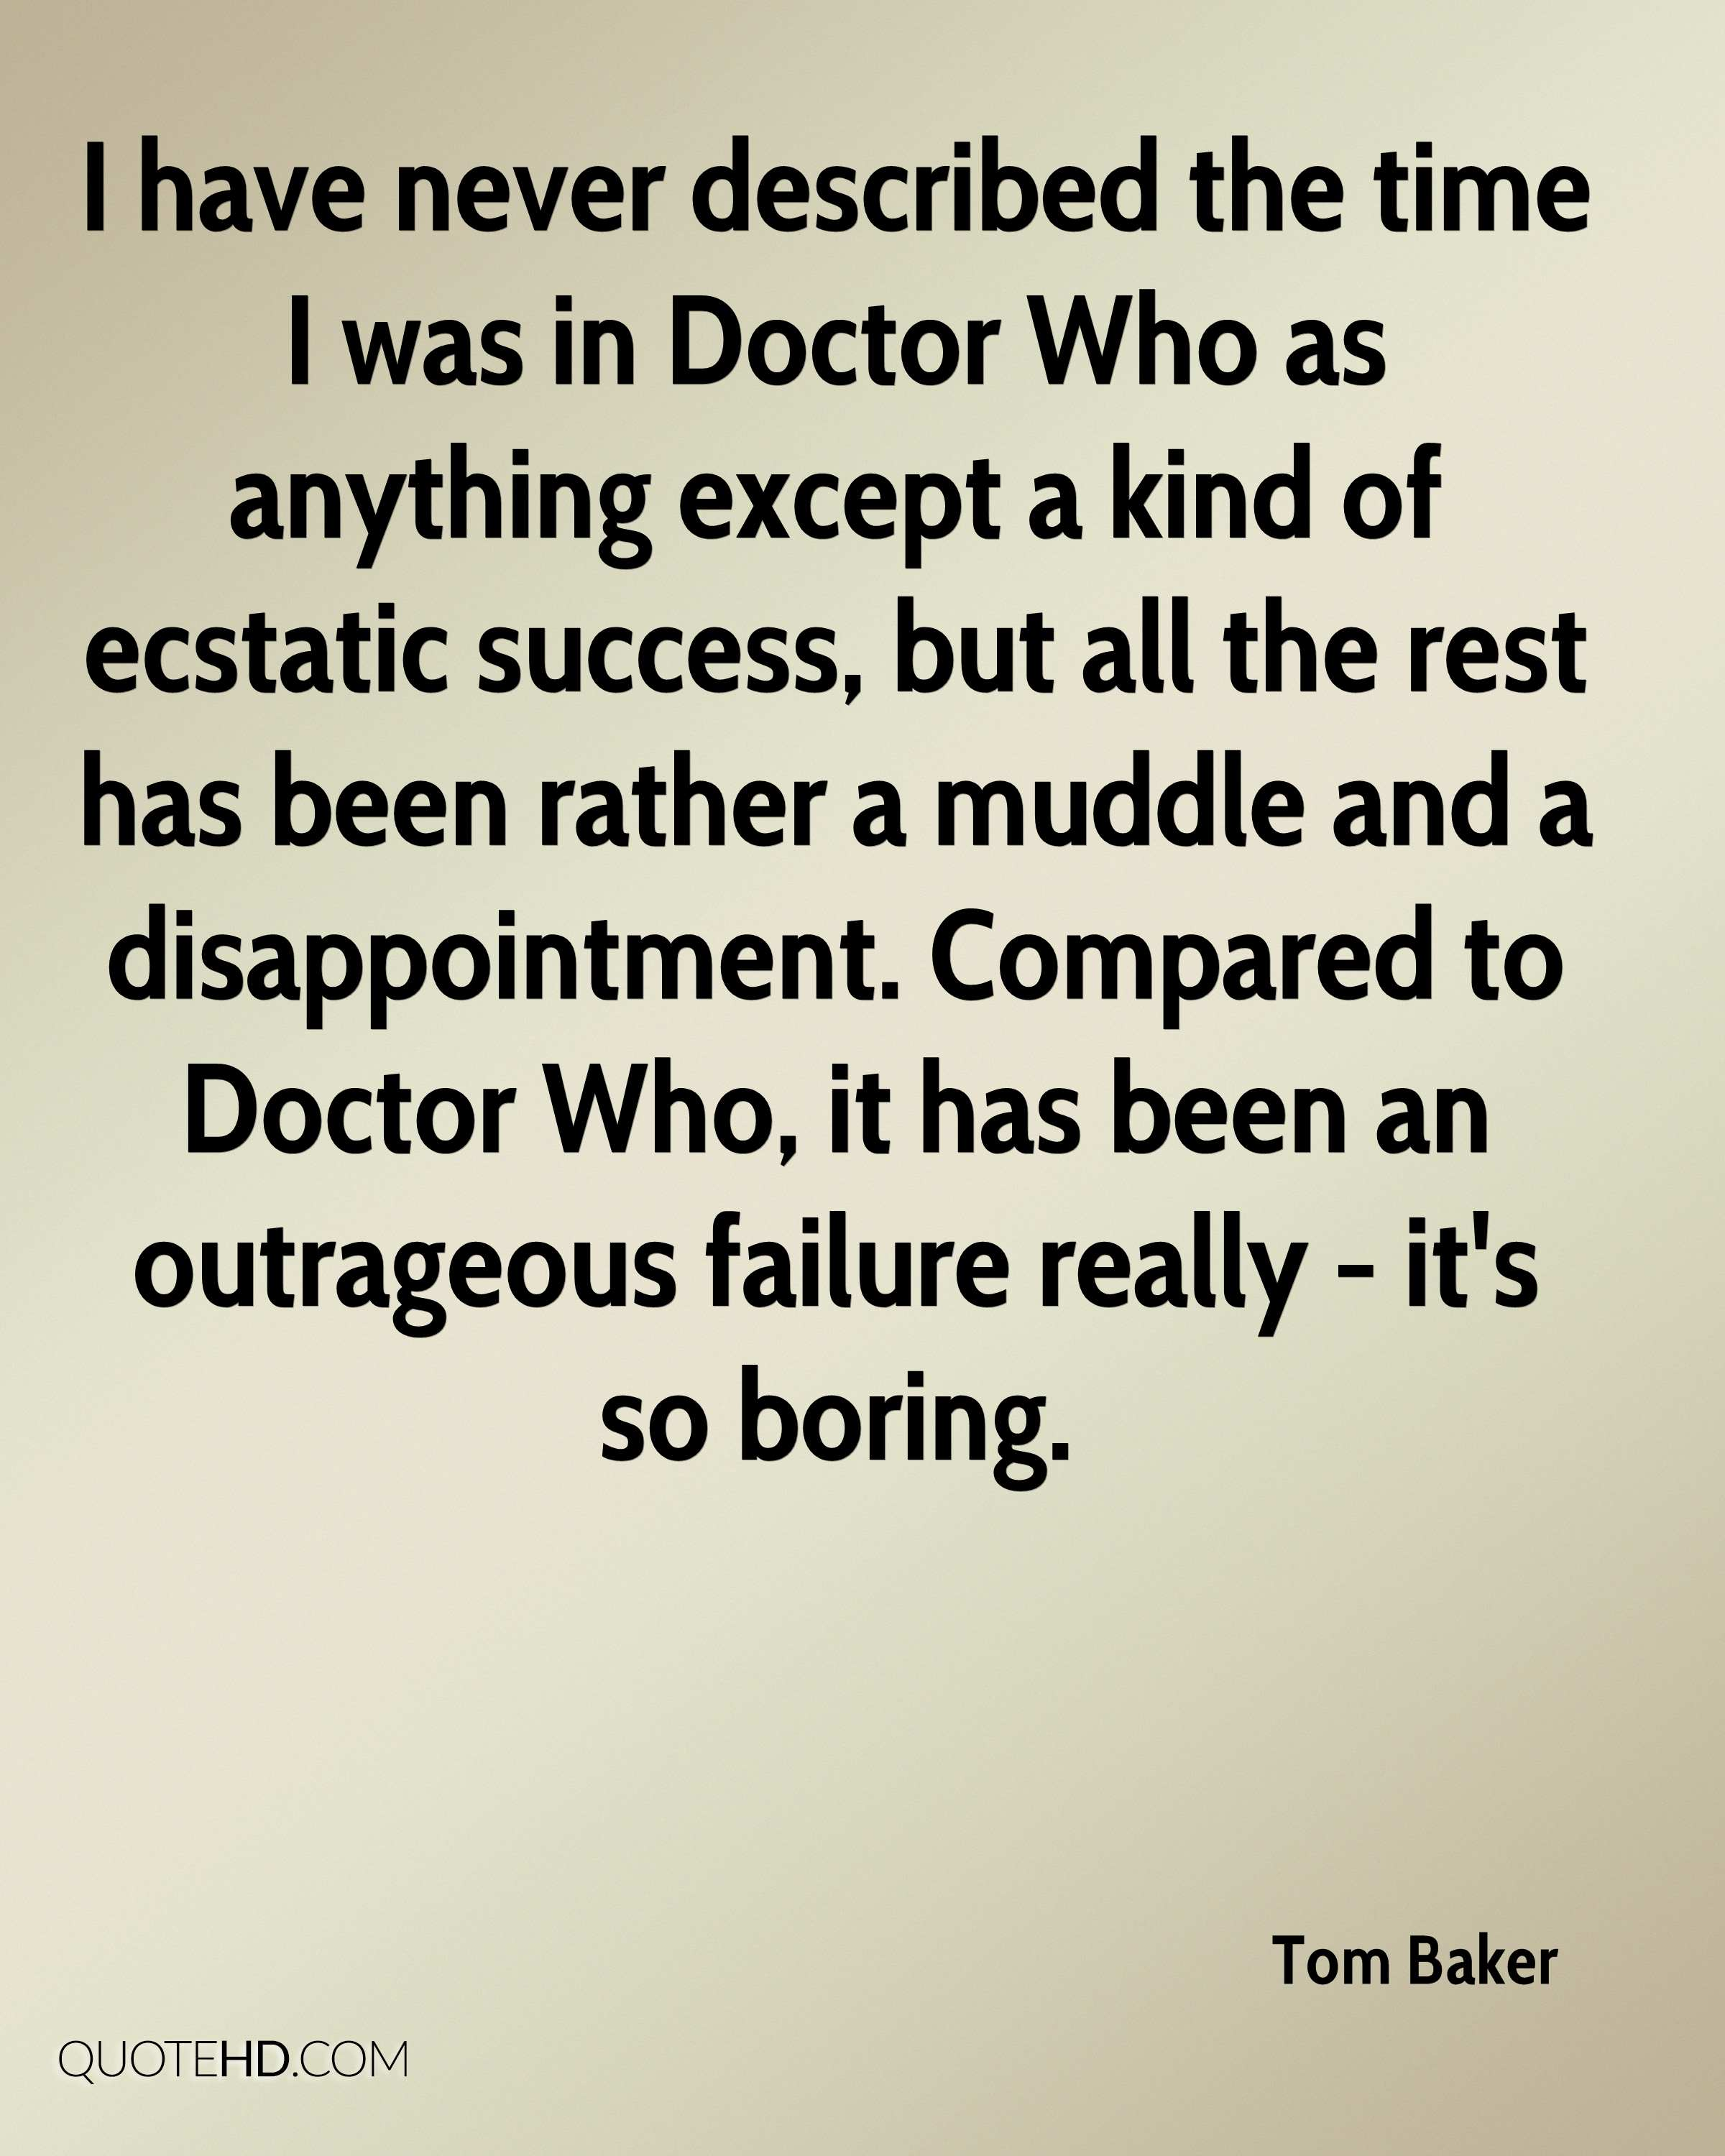 I have never described the time I was in Doctor Who as anything except a kind of ecstatic success, but all the rest has been rather a muddle and a disappointment. Compared to Doctor Who, it has been an outrageous failure really - it's so boring.